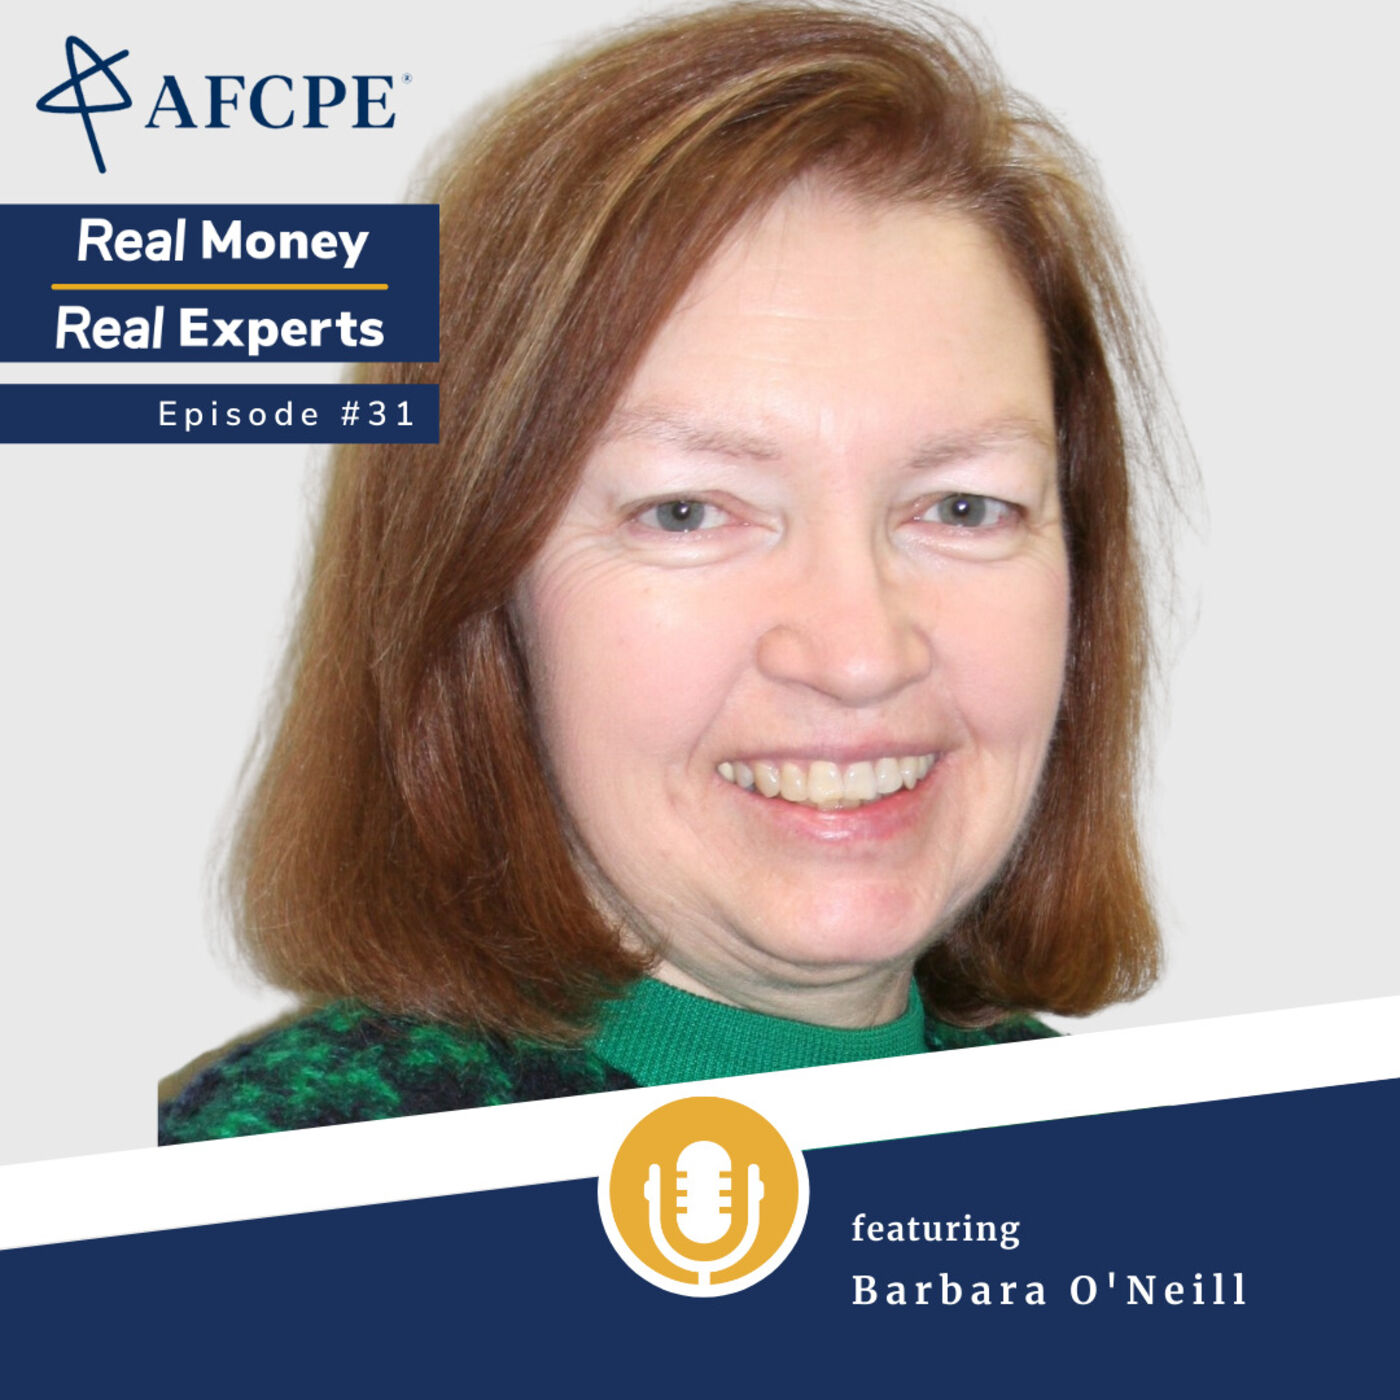 Exploring Transitions - A look at AFCPE® through the years and Changing Careers with Barbara O'Neill, AFC®